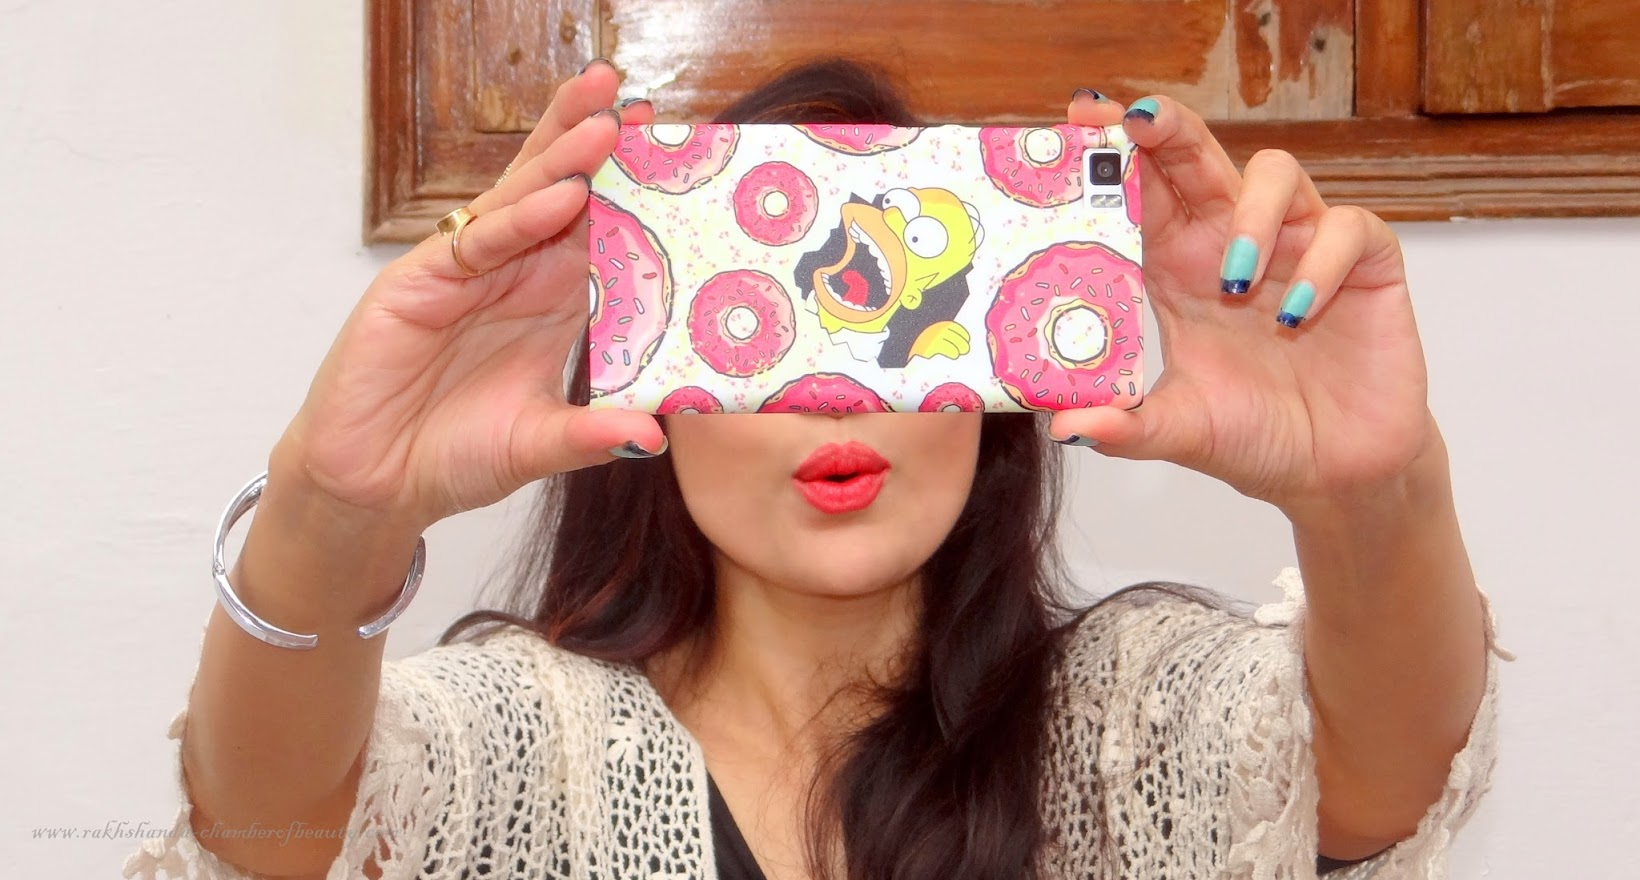 New in: Pretty Phone covers from Crayyostore, Phone cases for Mi3, Cool phone cases, online shopping, review, Indian fashion blogger, Chamber of Beauty